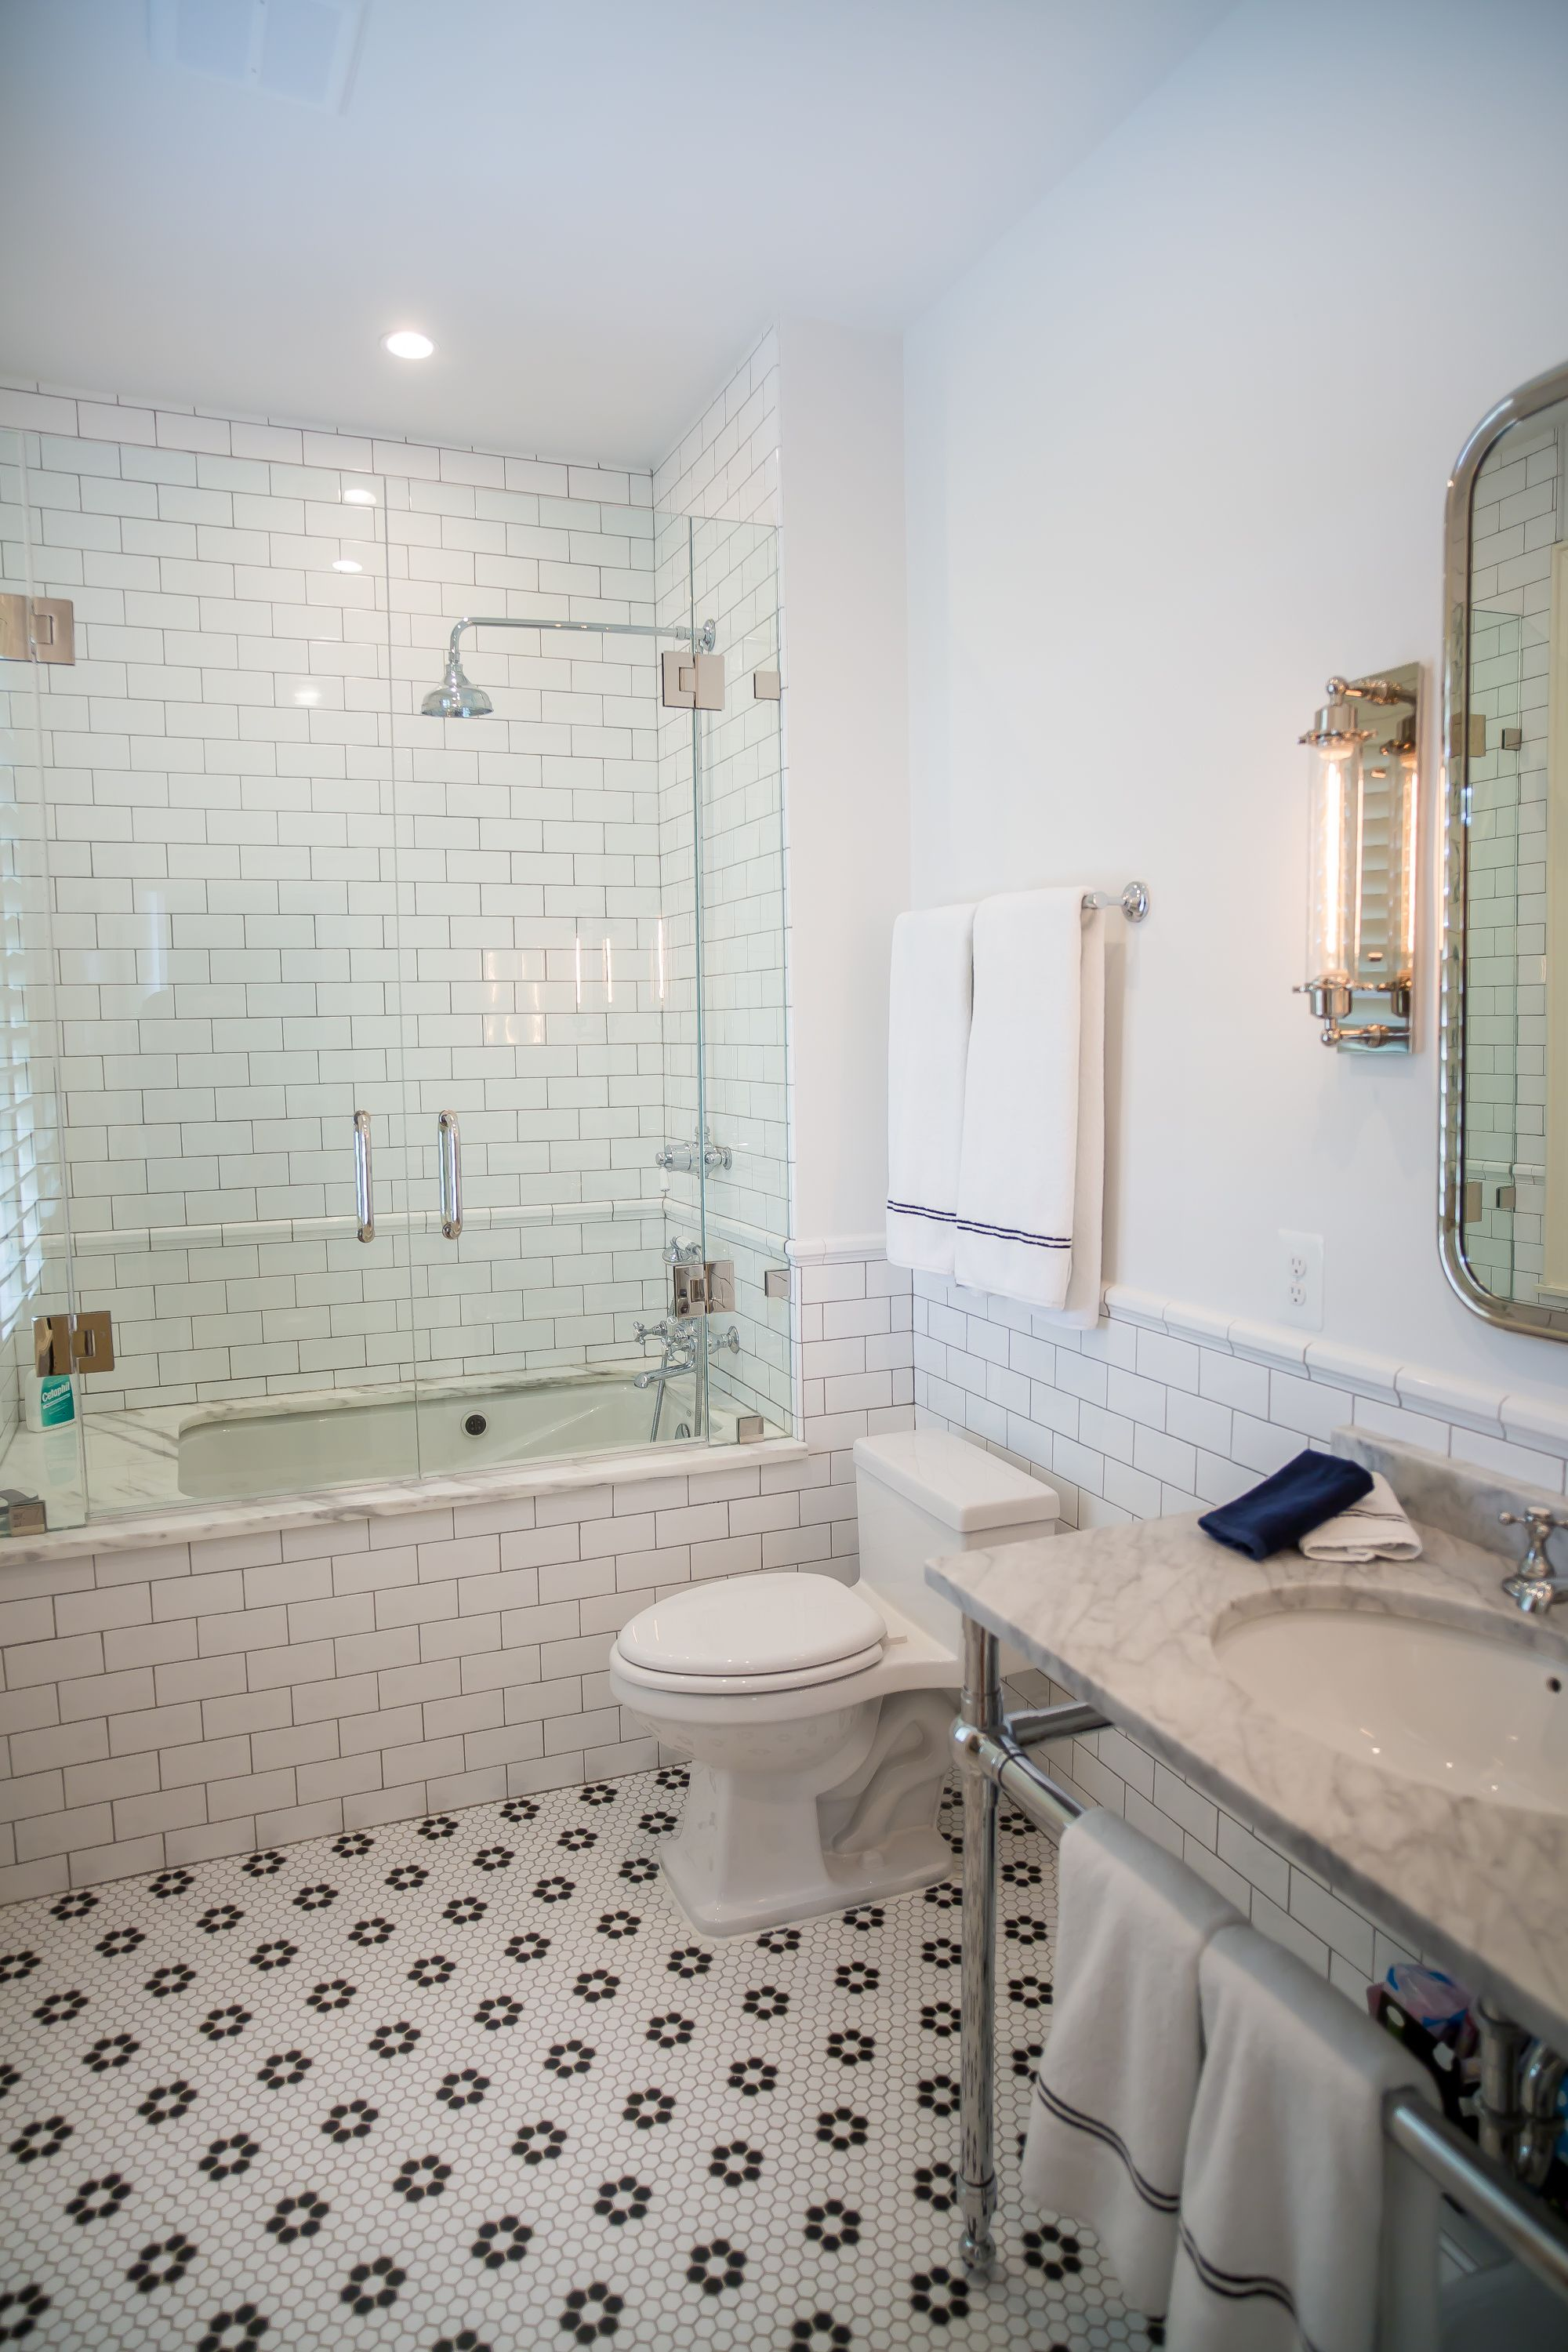 Bon Custom Bathroom Renovation In Loudoun County, Virginia Features Honeycomb  Tile Flooring, Subway Tile,